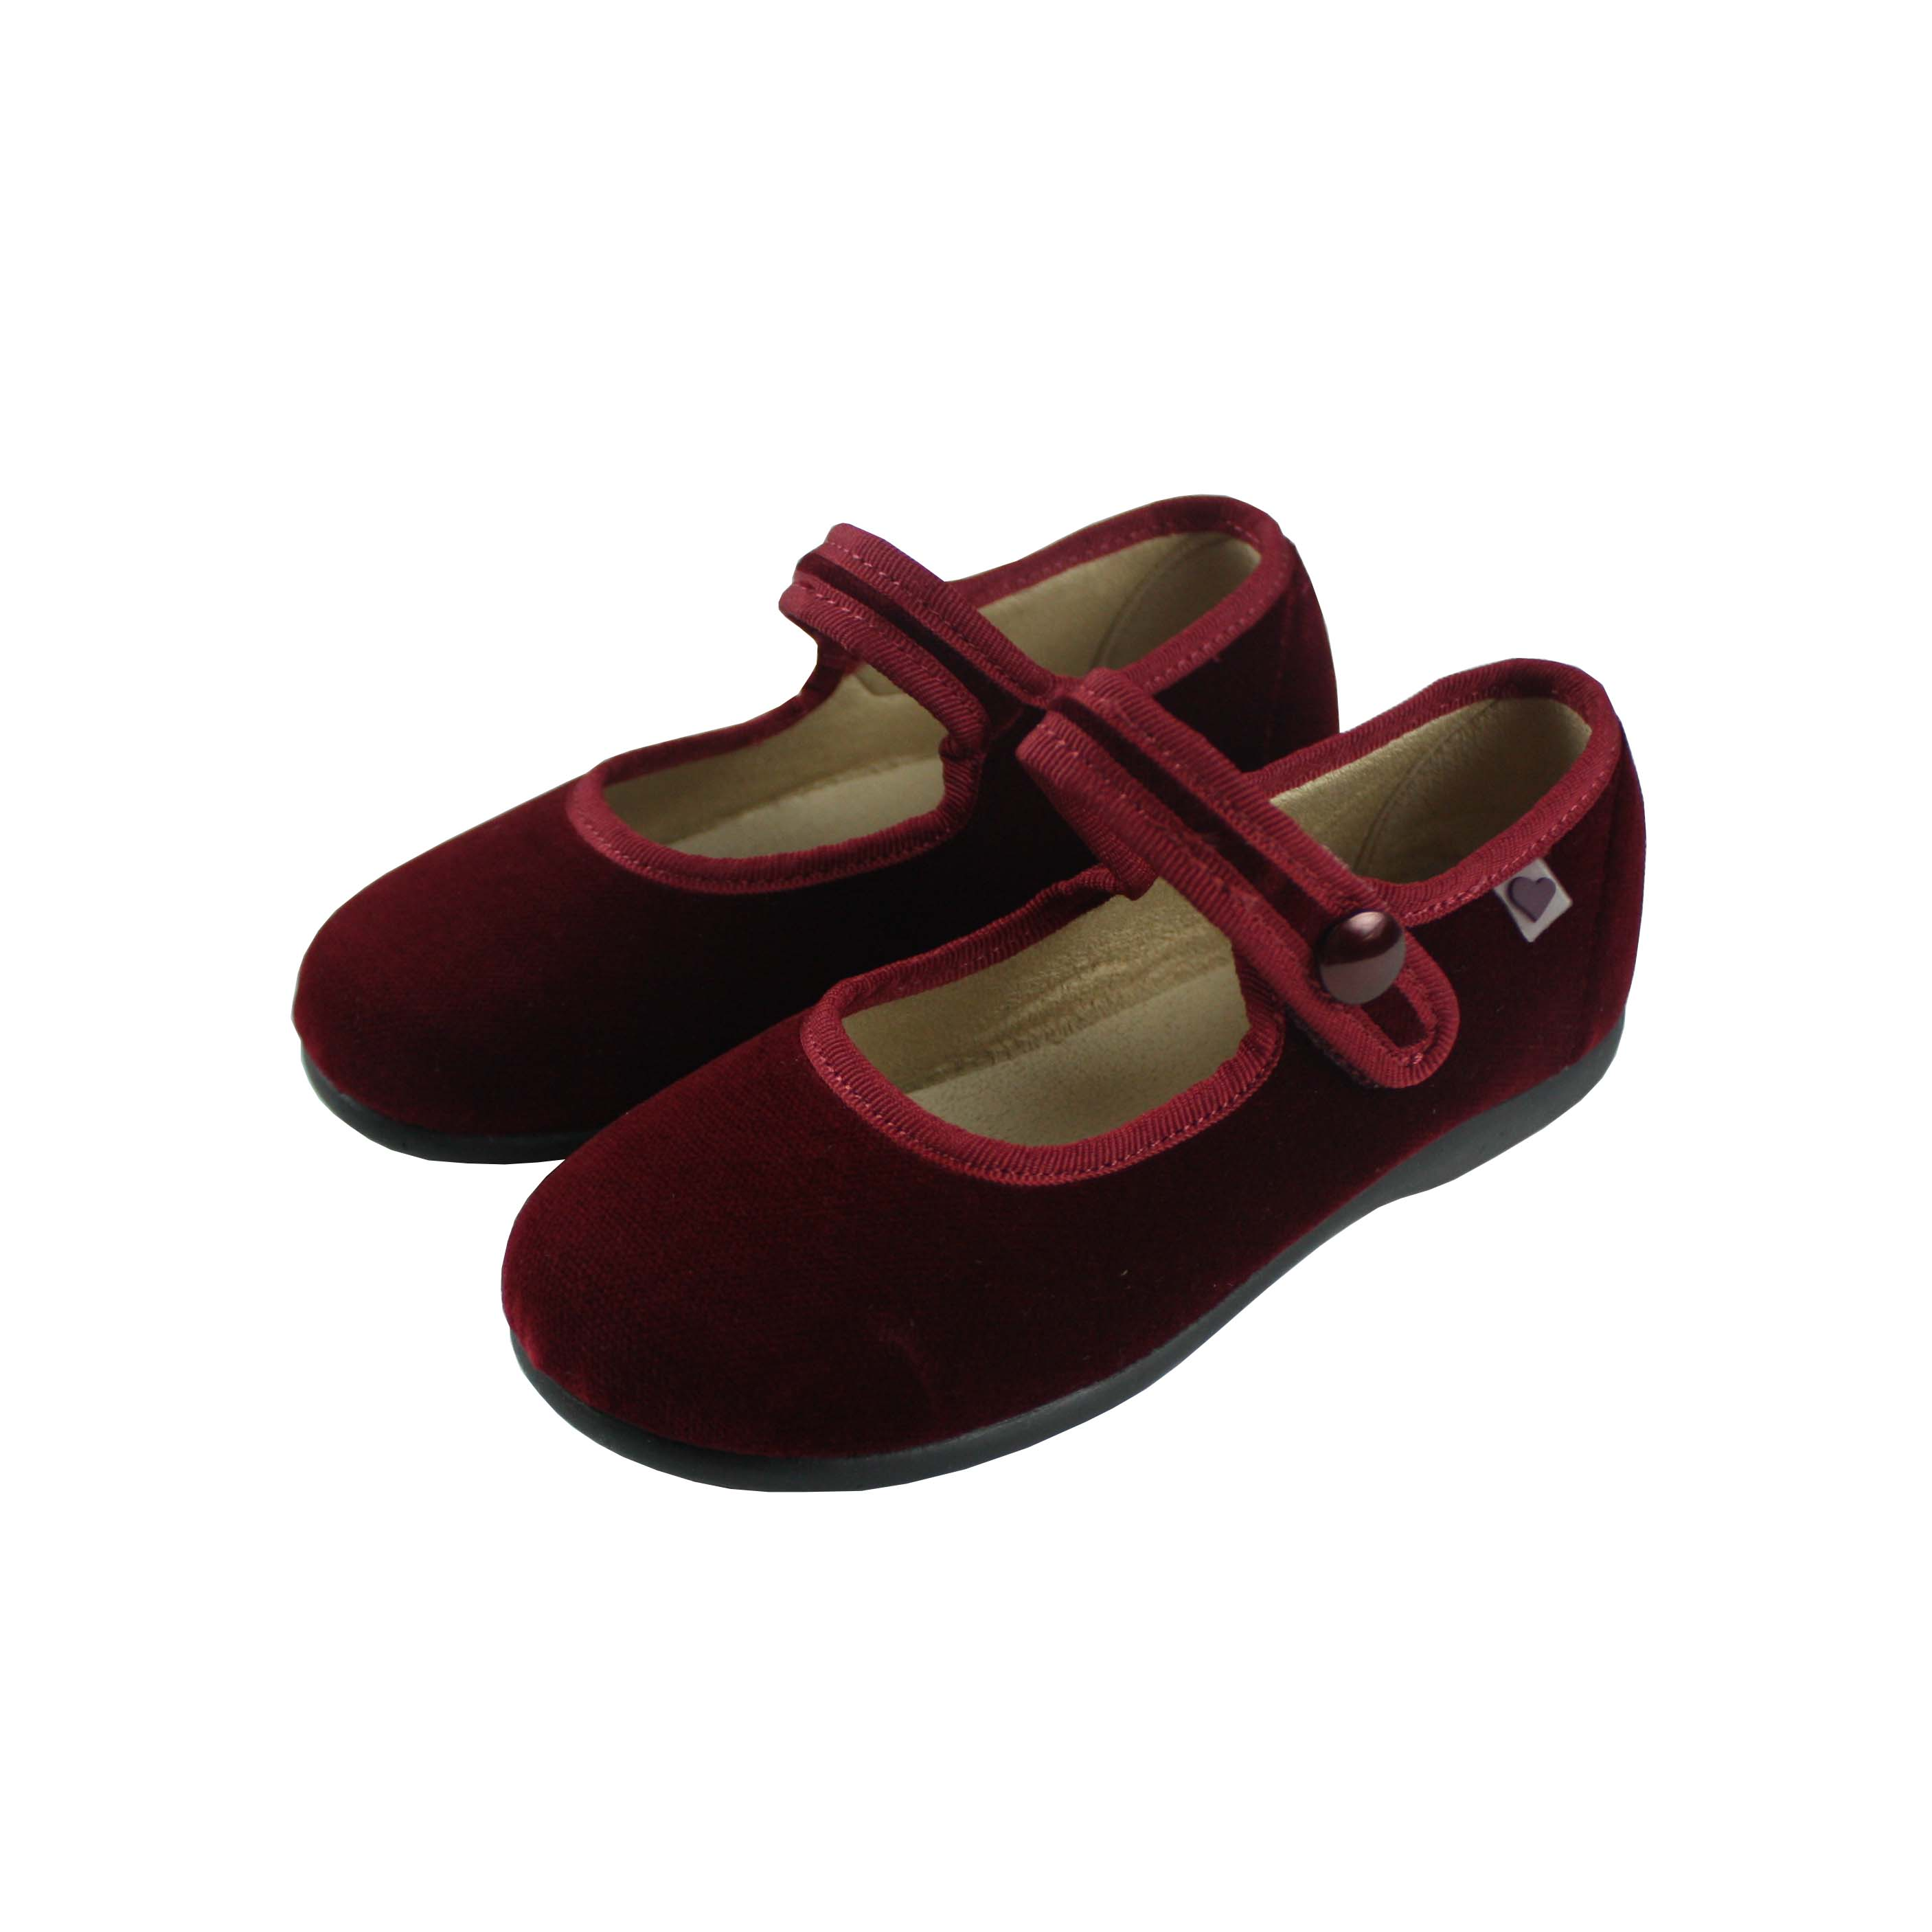 Mercedes velvet shoes burgundy by myhbaby